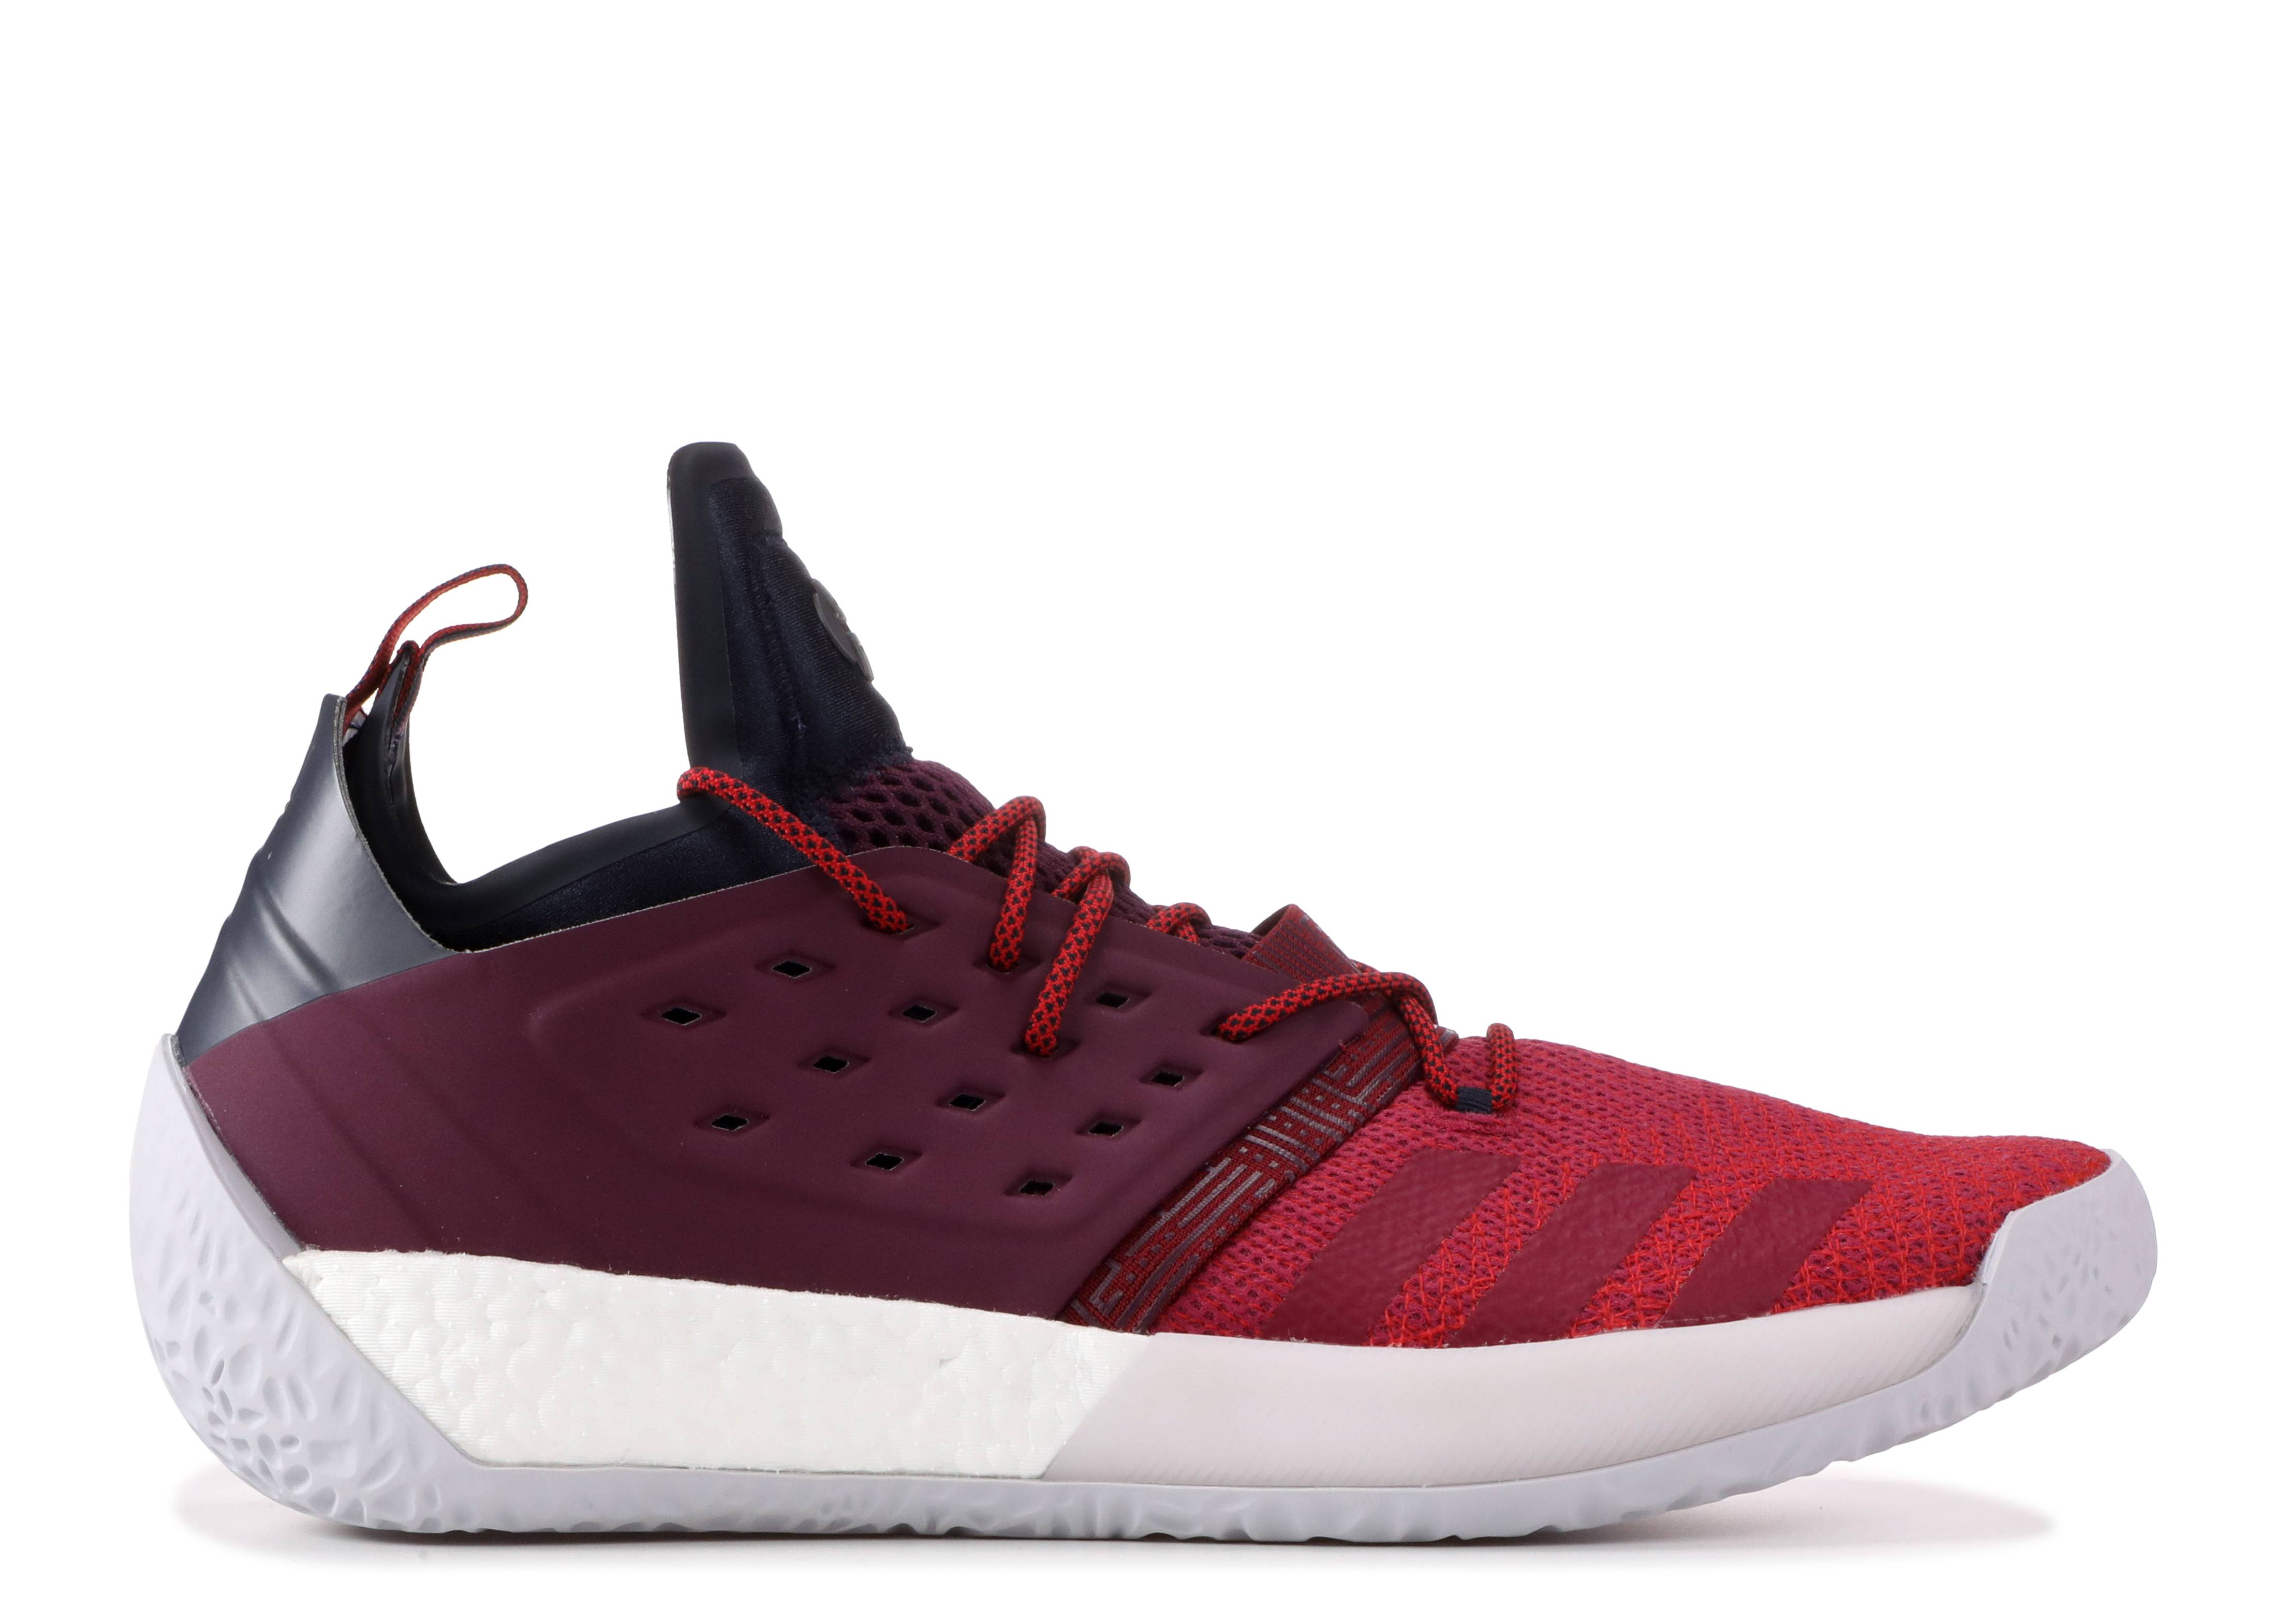 separation shoes ac5b2 7409b Harden Vol. 2